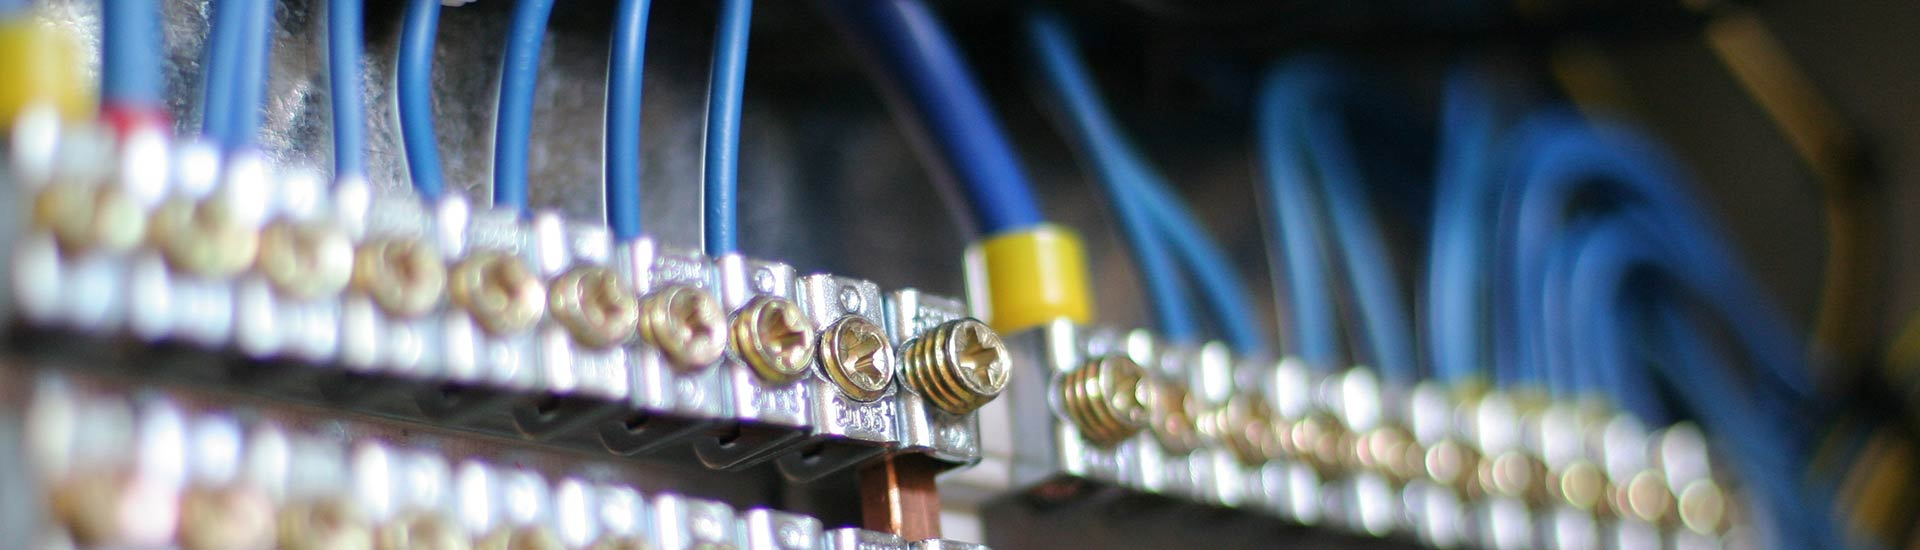 Commercial Electrician In Louisa Va Wiring Systems